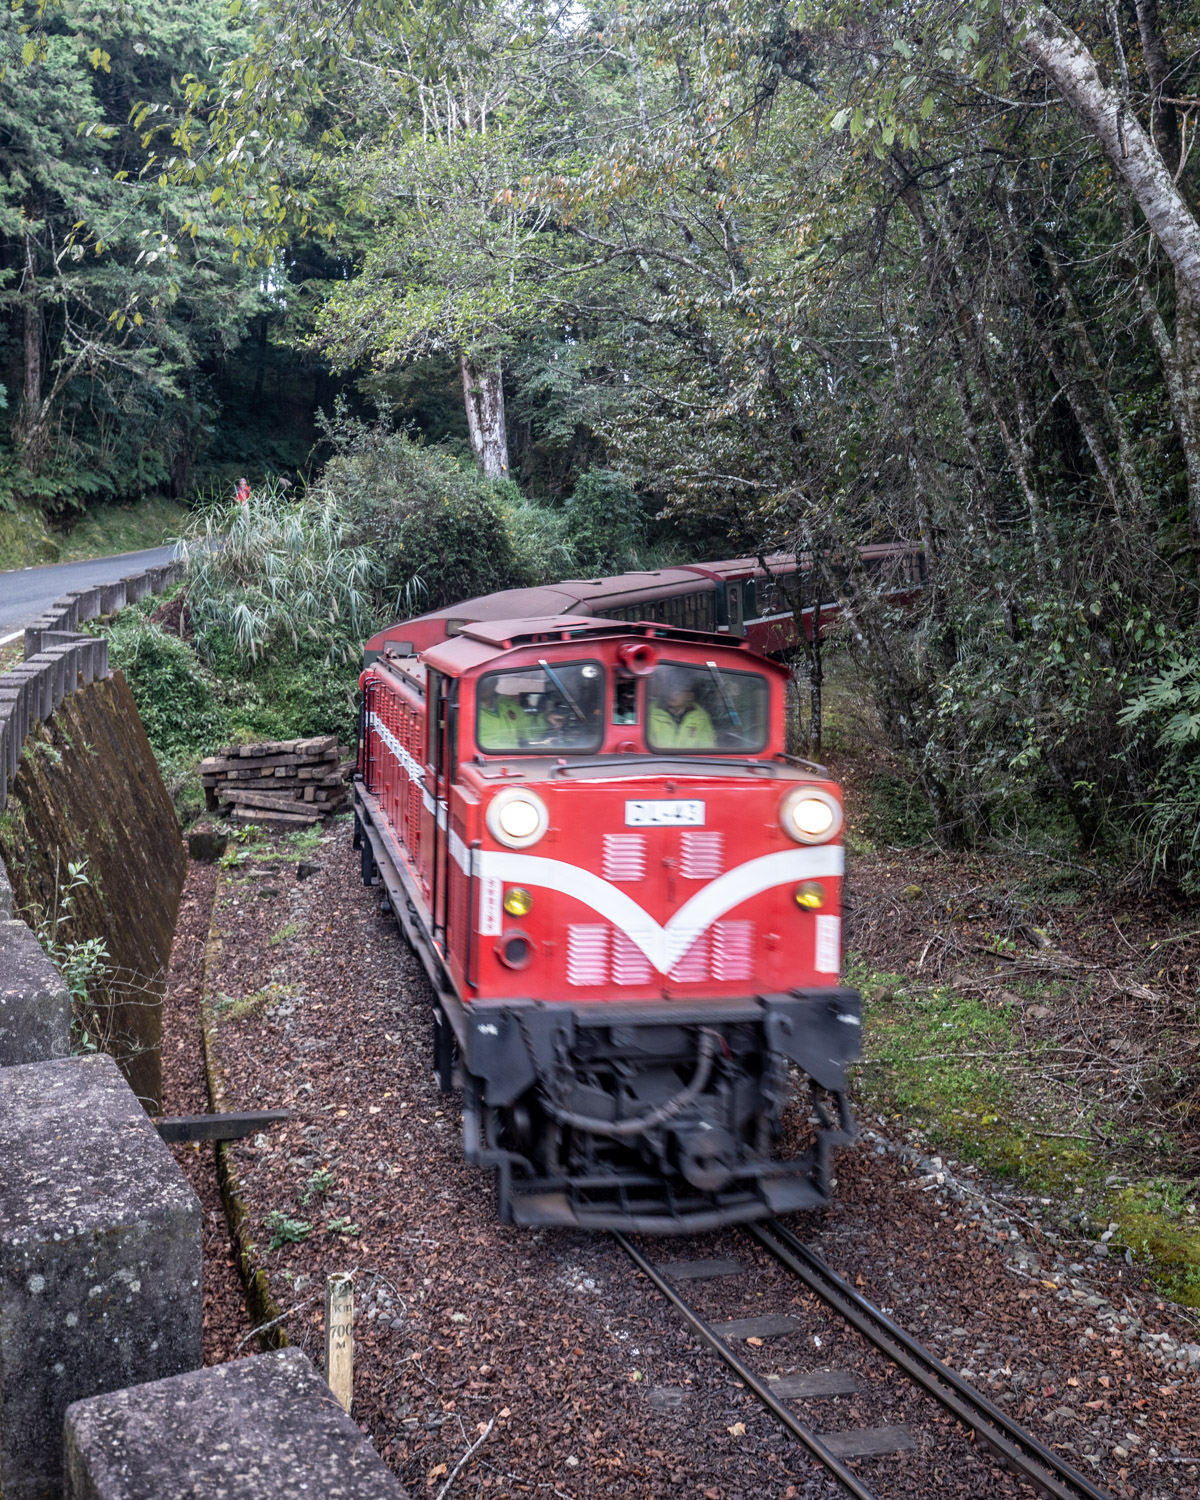 The trains from Zhaoping to Alishan